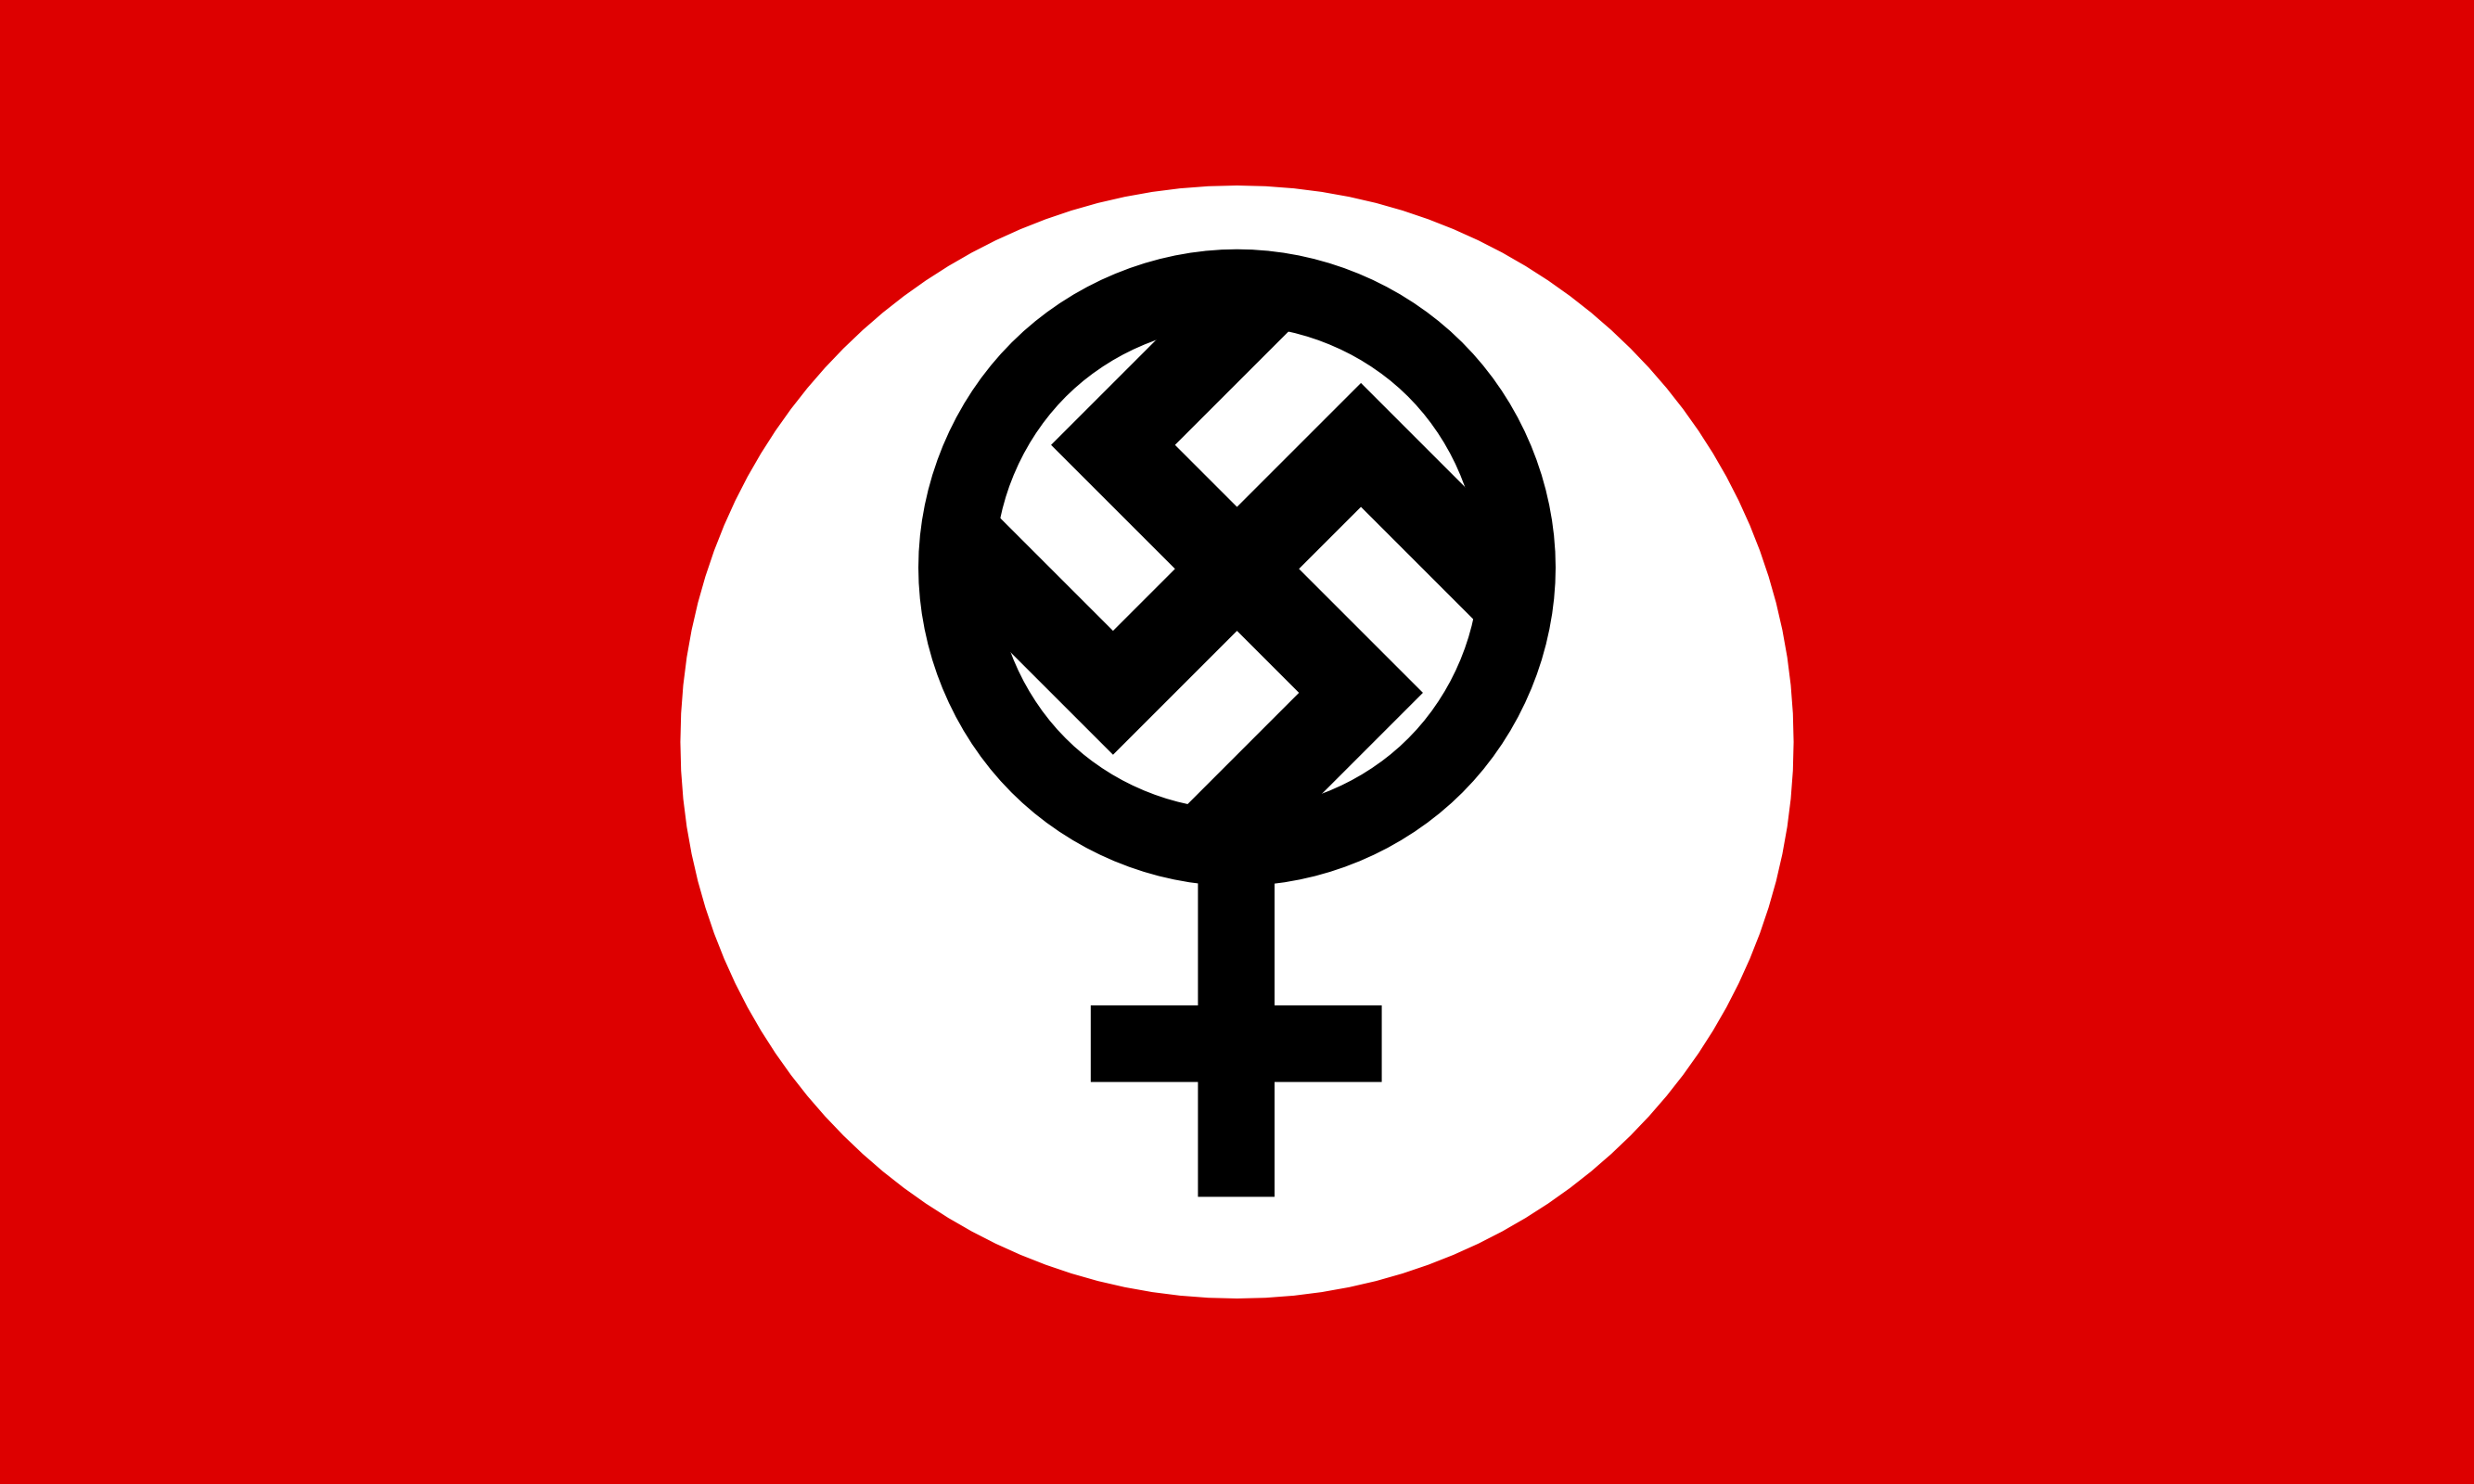 Flag of the Feminazi